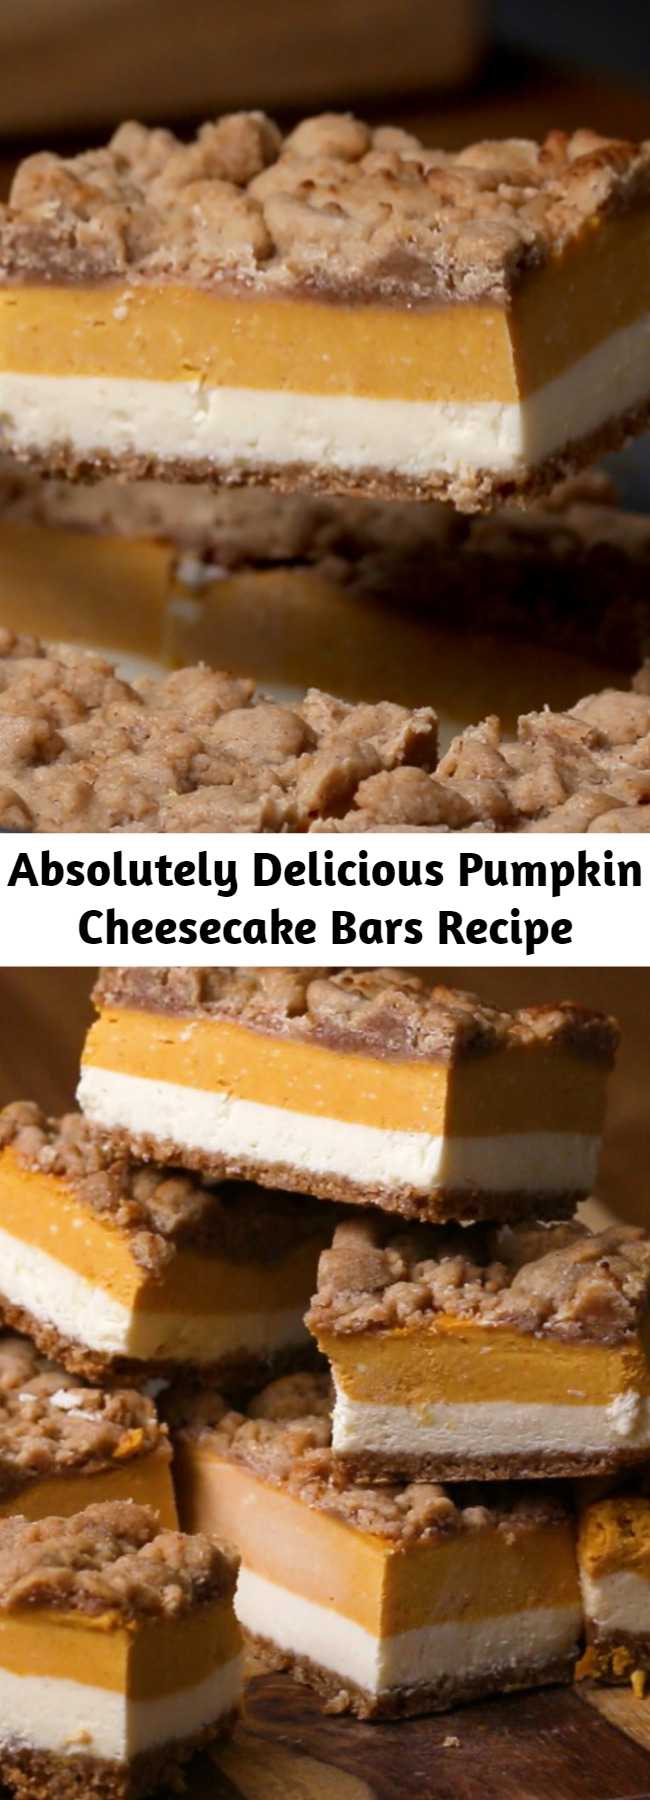 Absolutely Delicious Pumpkin Cheesecake Bars Recipe - Will make for a super tasty sweet treat during the fall and holiday season. This perfect Pumpkin Cheesecake Bars is delicious and very good! Perfect Thanksgiving Dessert! #pumpkin #cheesecake #fall #fall #recipe